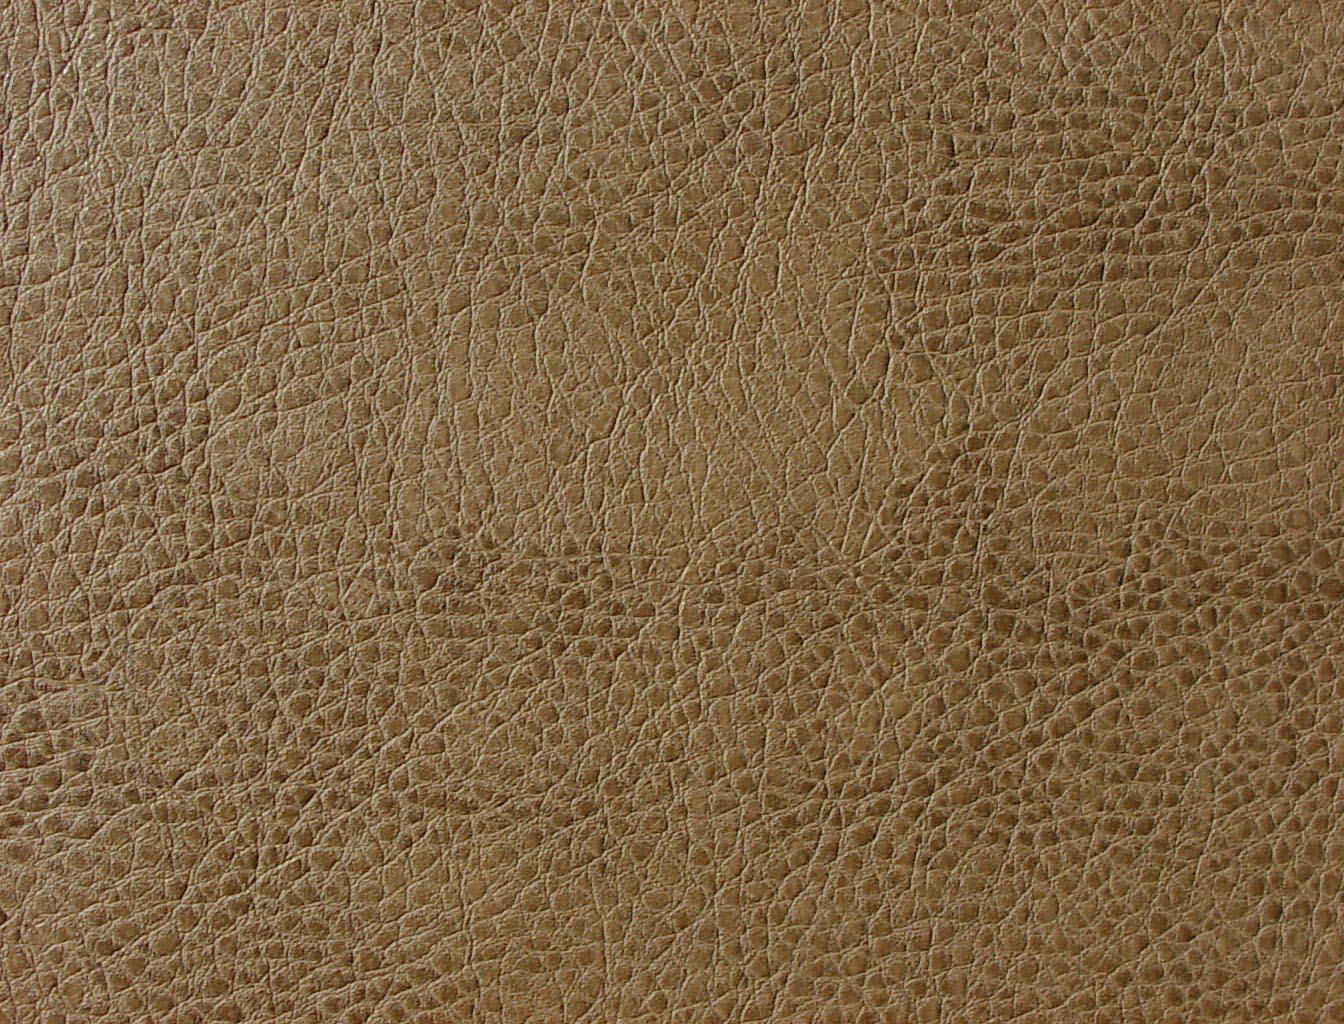 Black Leather Fabric Texture Remarkable Real Leather Fabric